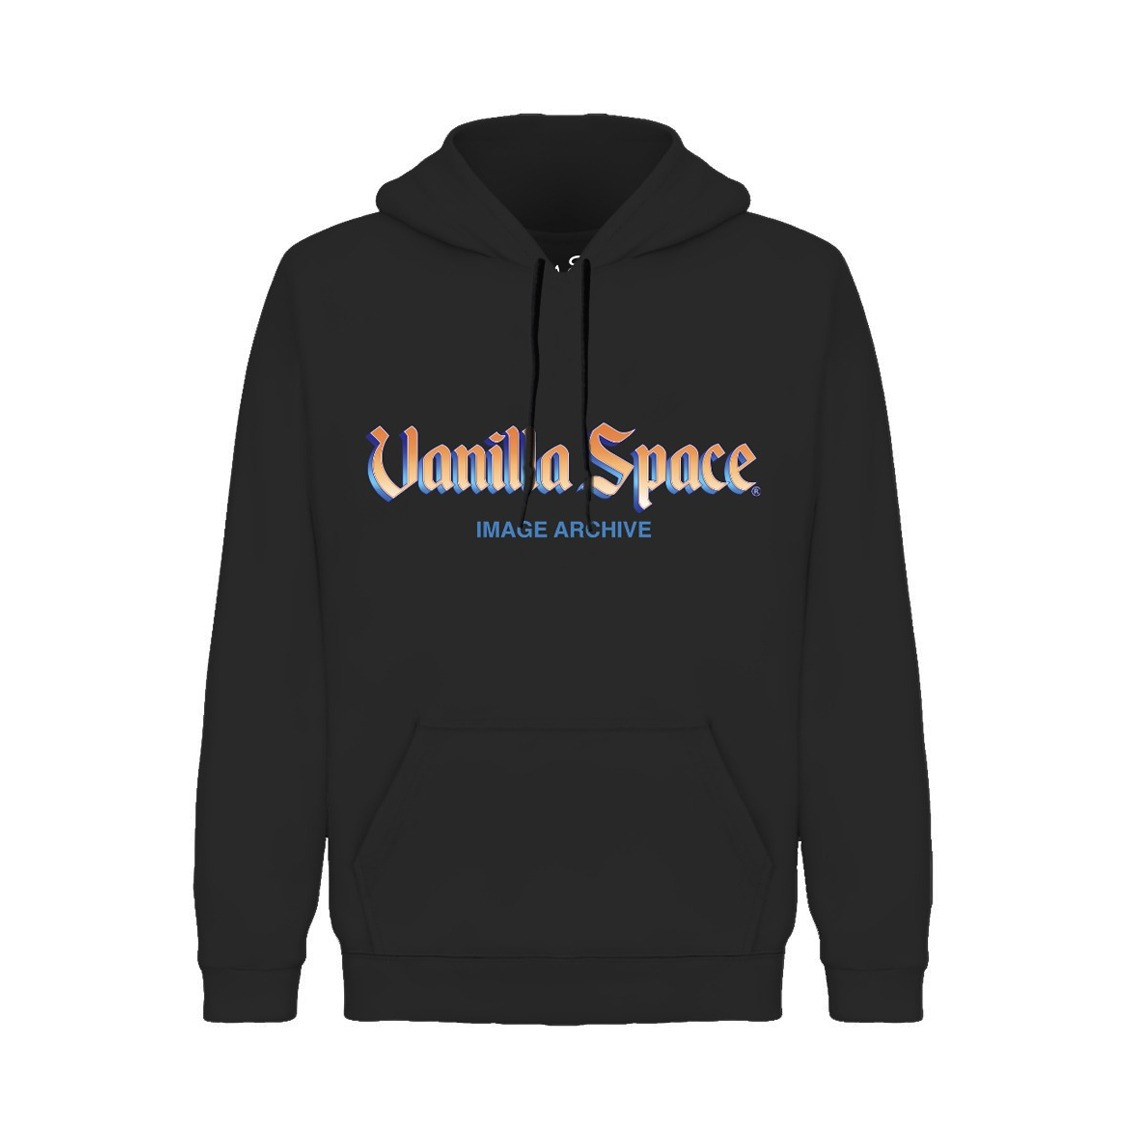 Vanilla space grad ofic image archive hoodie product black front